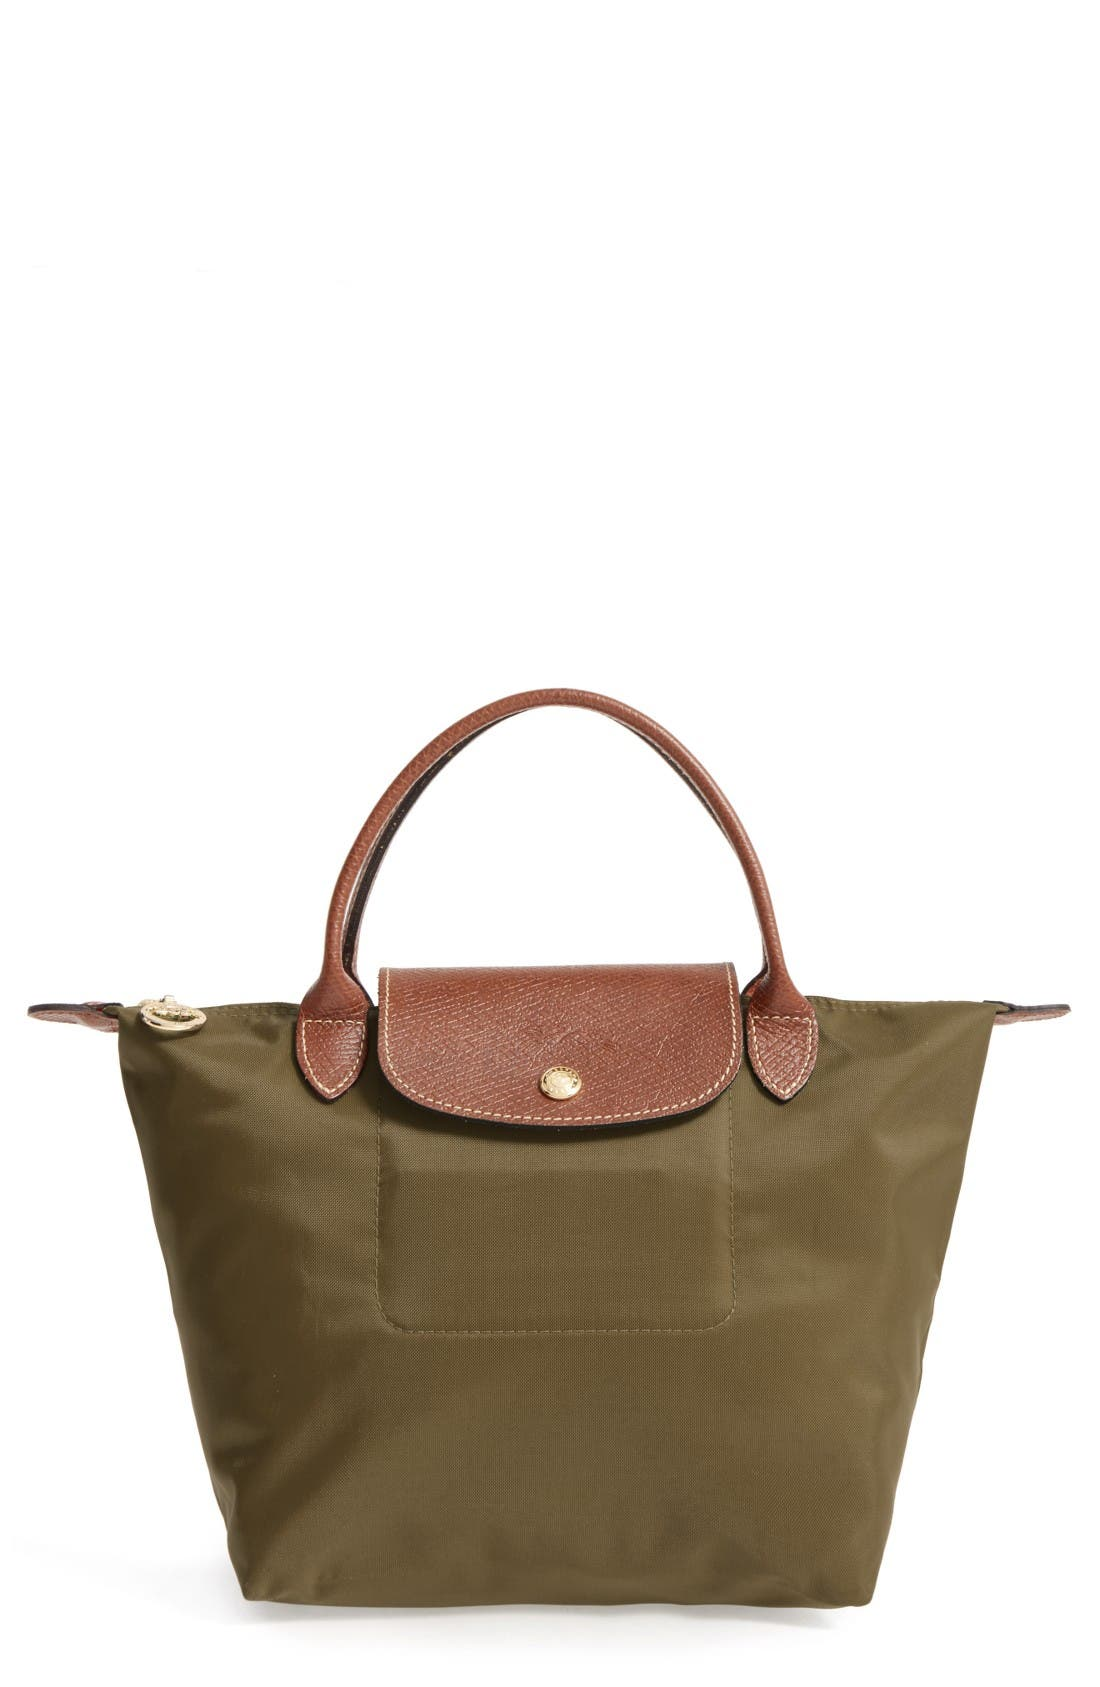 'Small Le Pliage' Top Handle Tote,                             Main thumbnail 1, color,                             New Khaki